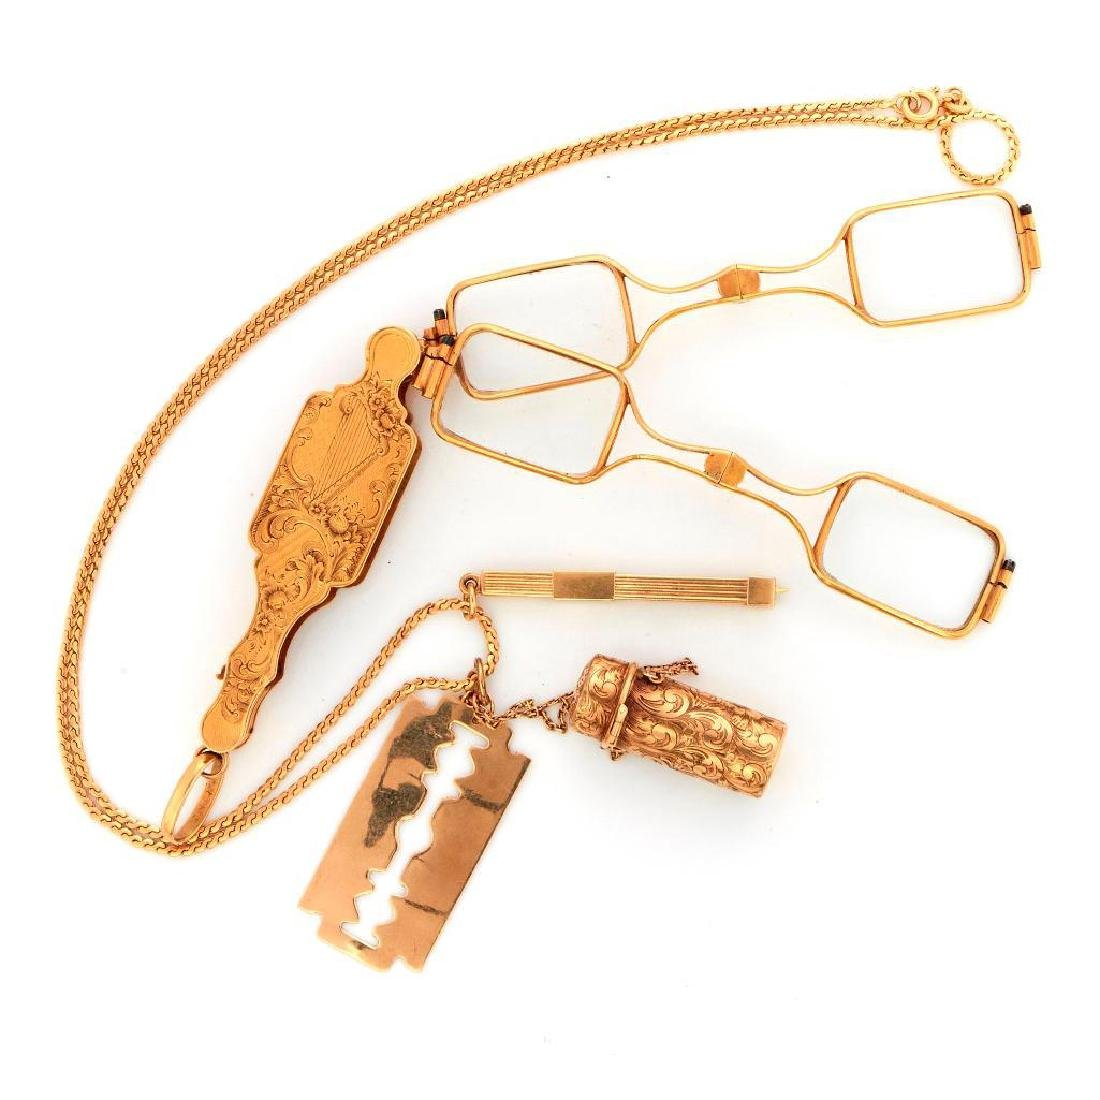 Antique 14k gold double lorgnette and necklace